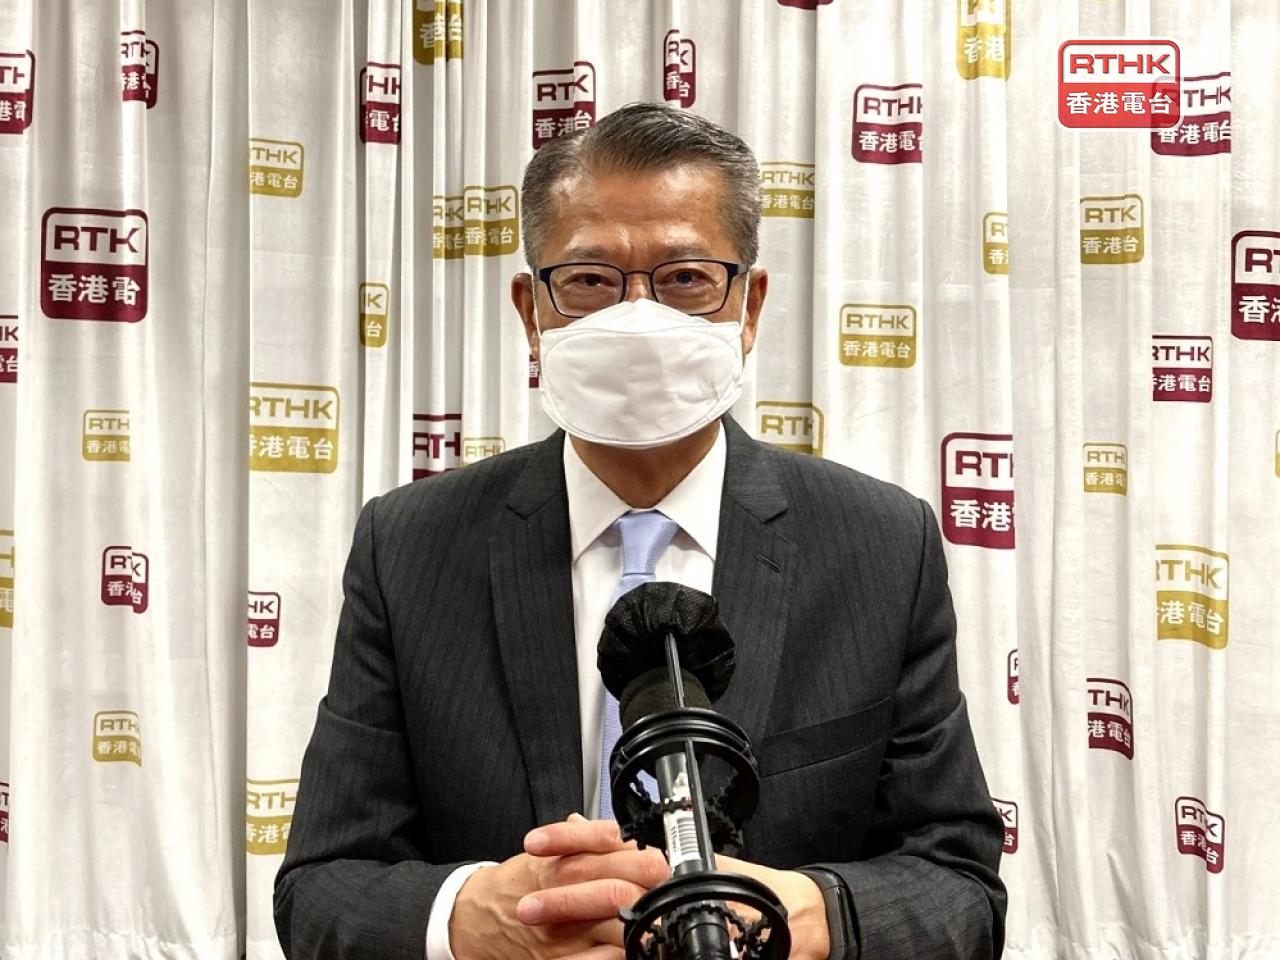 """Paul Chan says US officials are making statements that are """"self-contradictory and illogical"""". File photo: RTHK"""